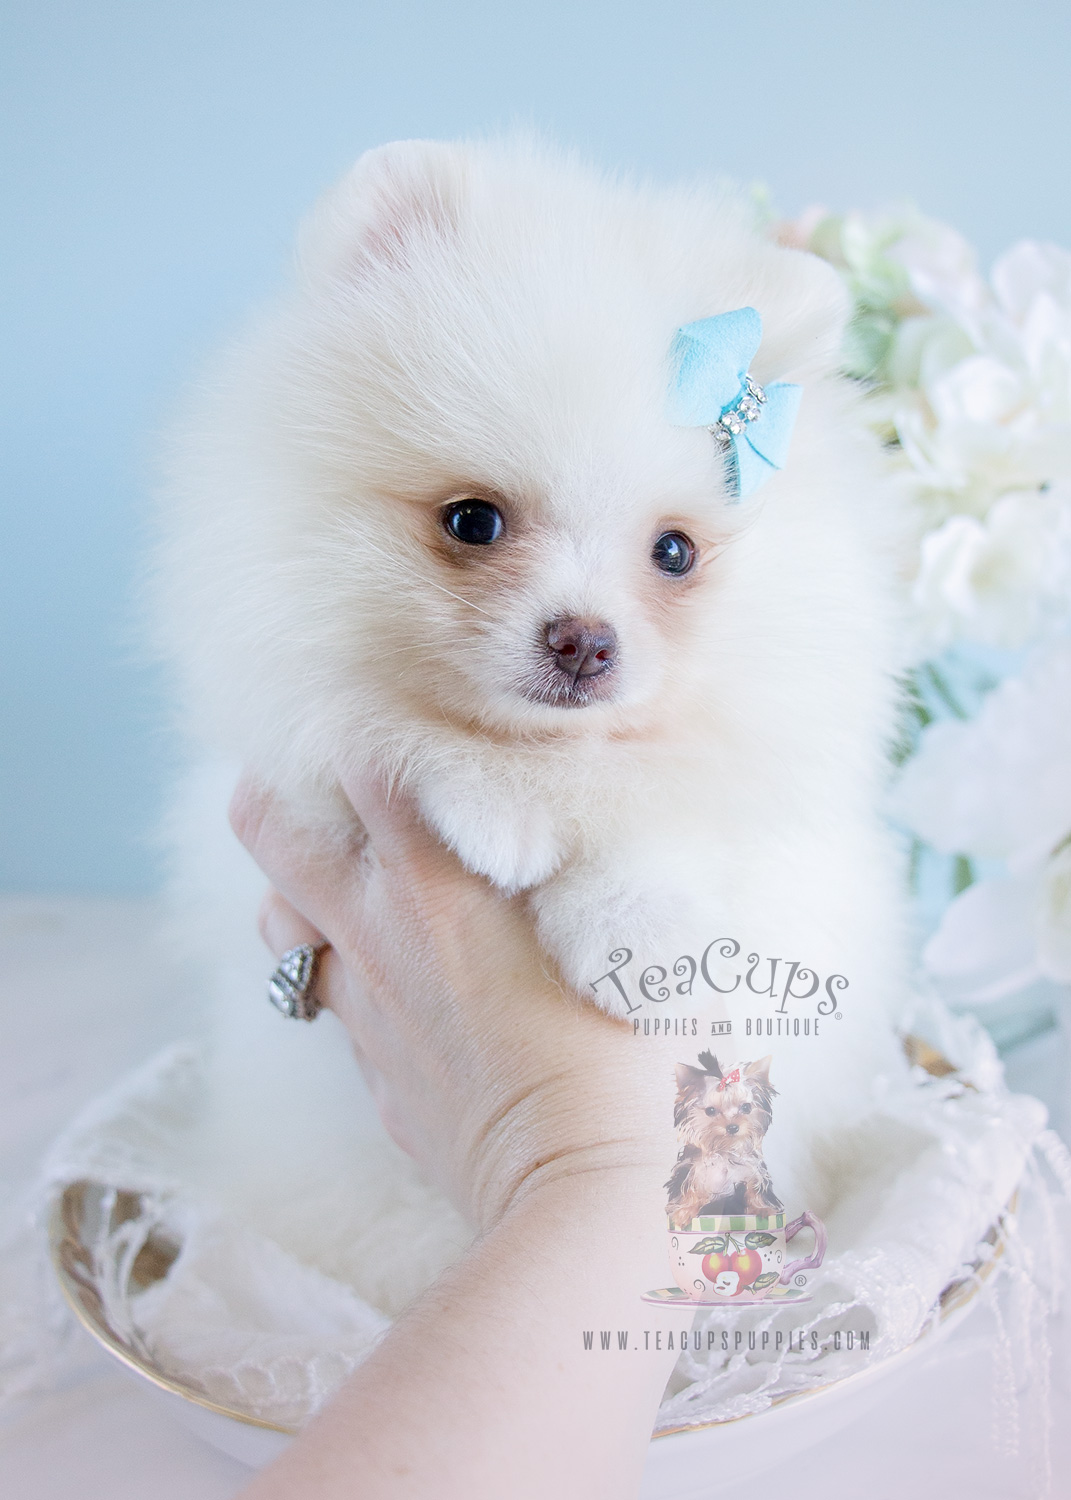 For Sale at Teacups Puppies - White and Cream Pomeranian Puppies